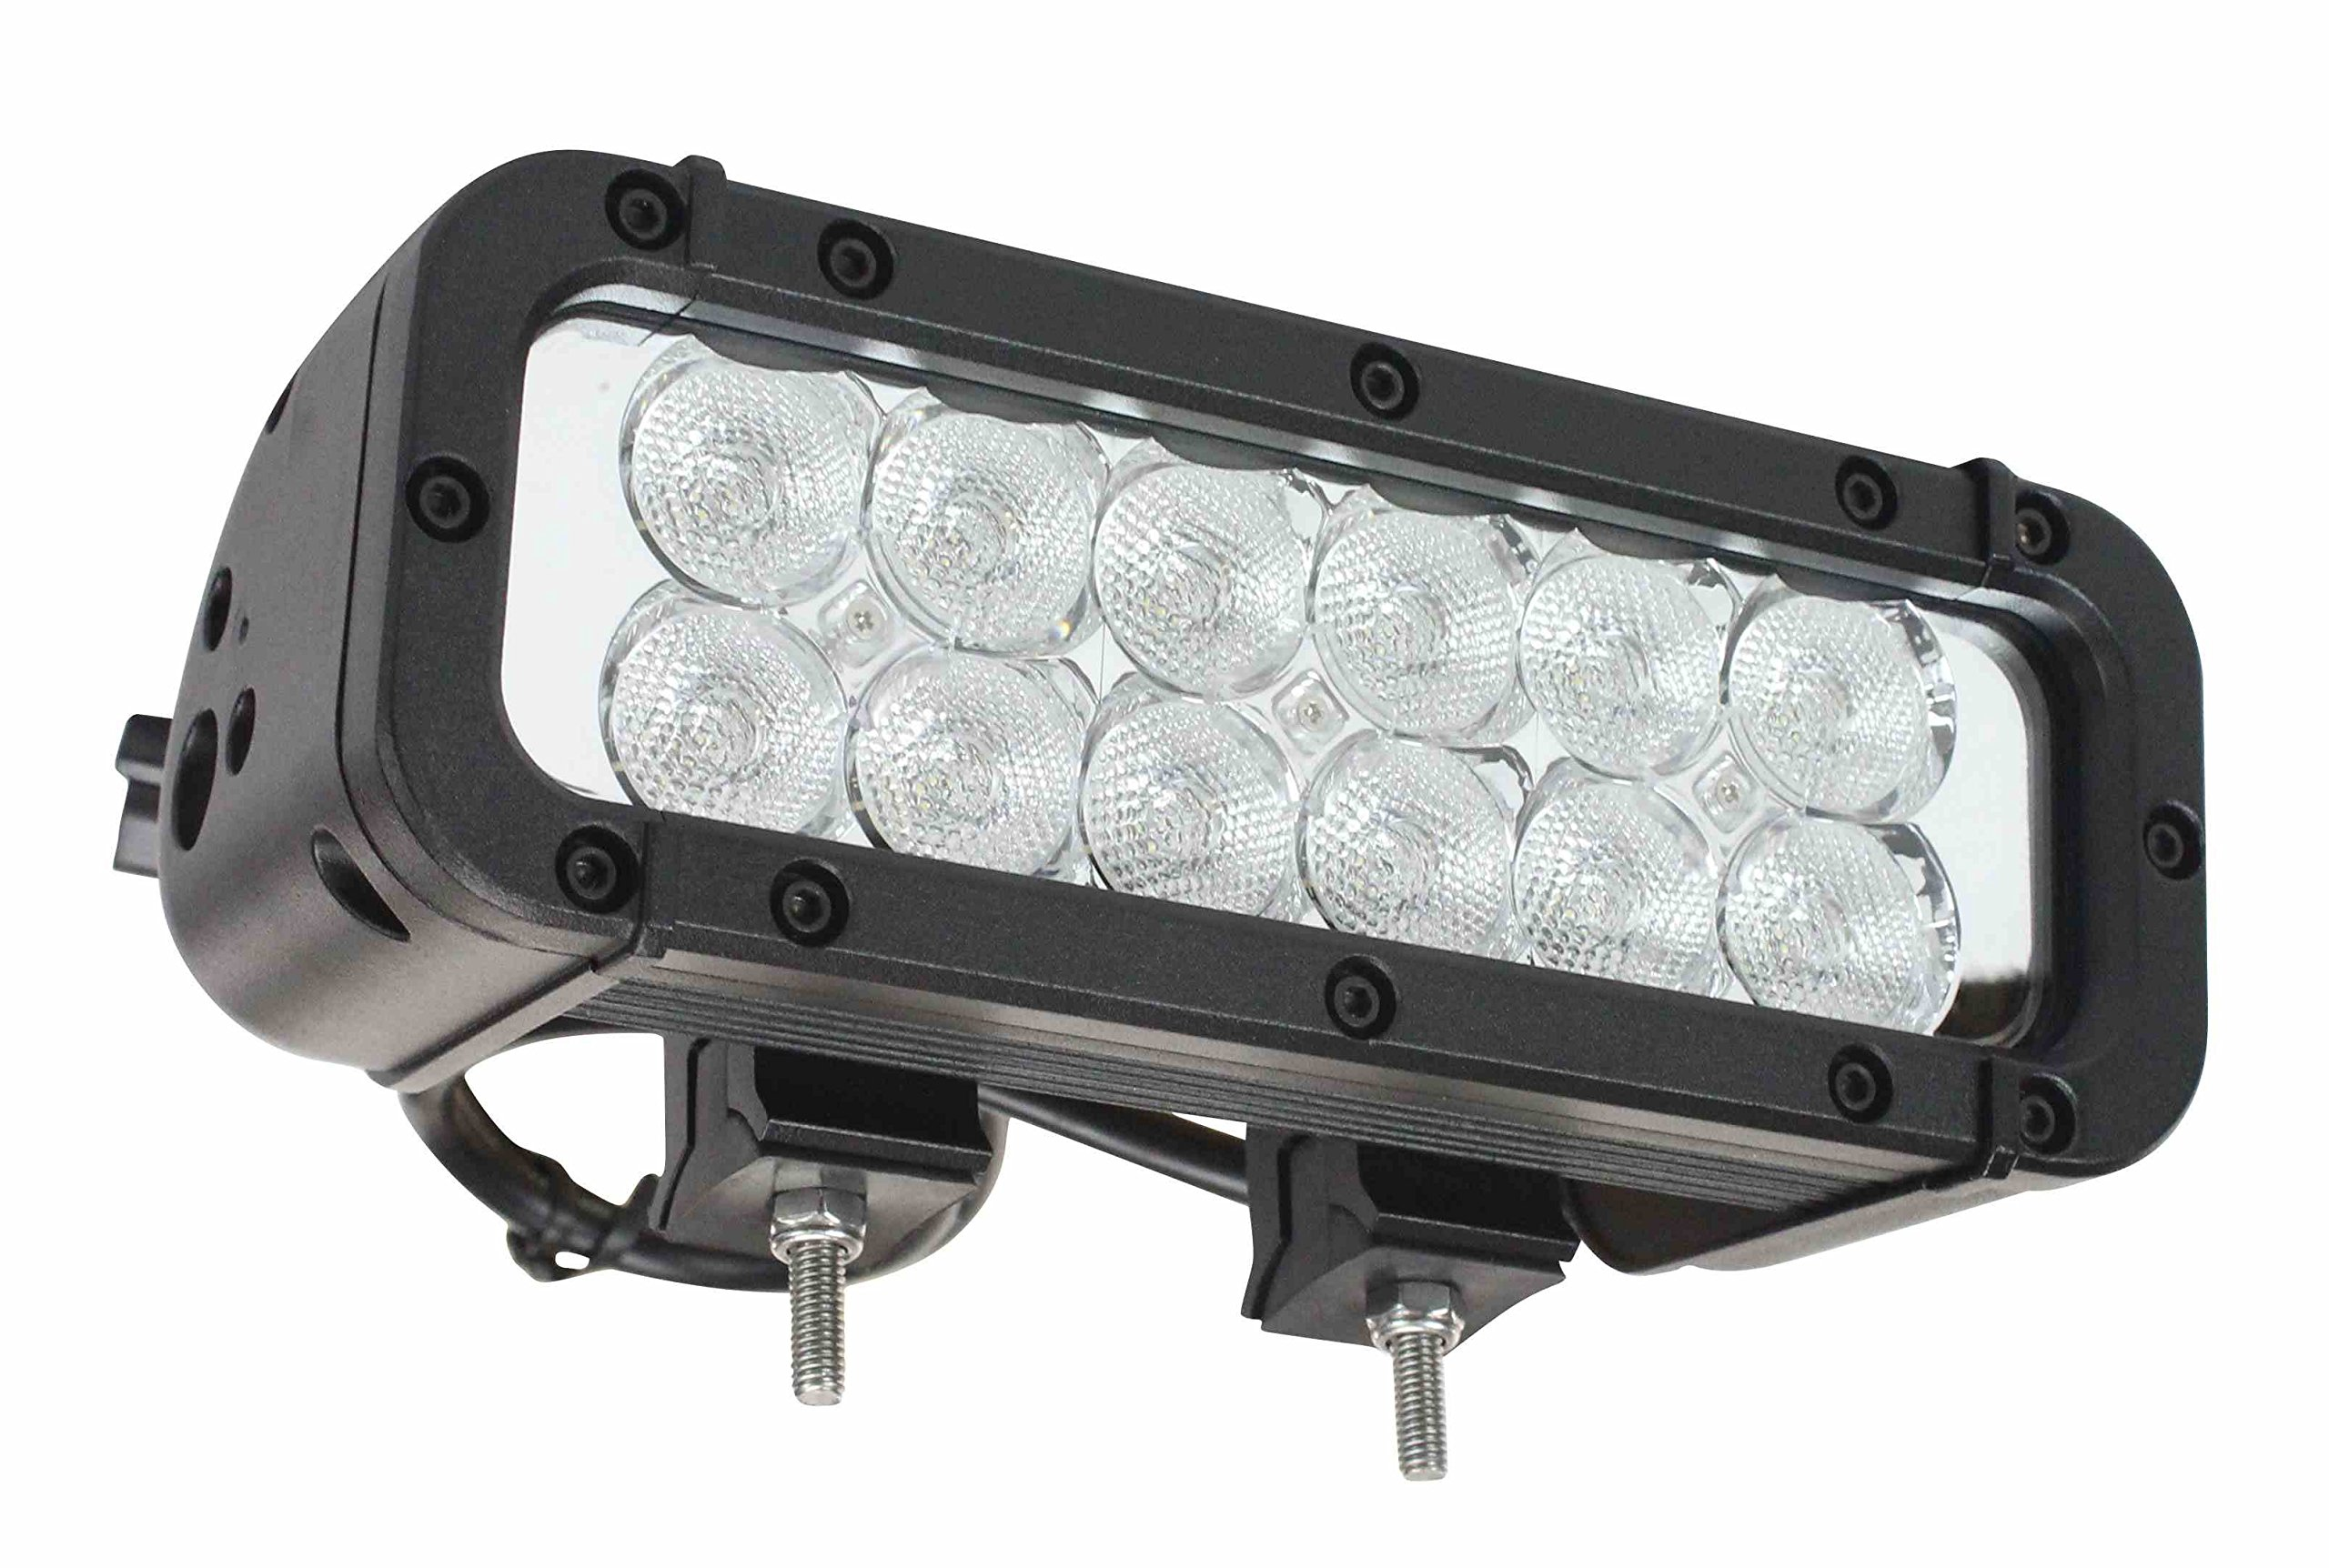 Infrared LED Light Emitter - 9-42 Volts DC - 550'L X 70'W Spot Beam - 12 Infrared Emitters LEDs